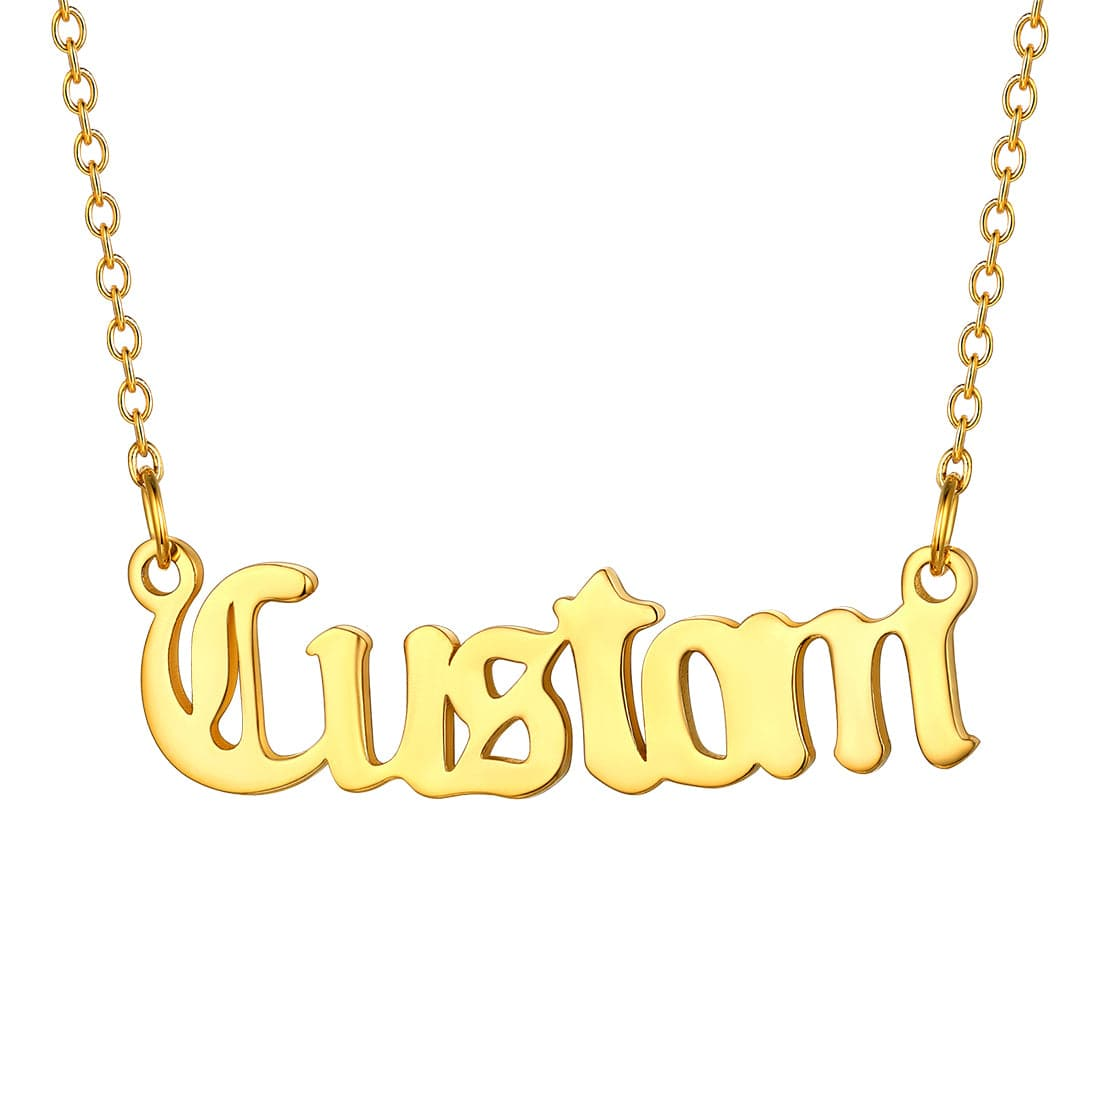 Personalized Classic Old English Name Necklace In 18K Gold Platinum Plated